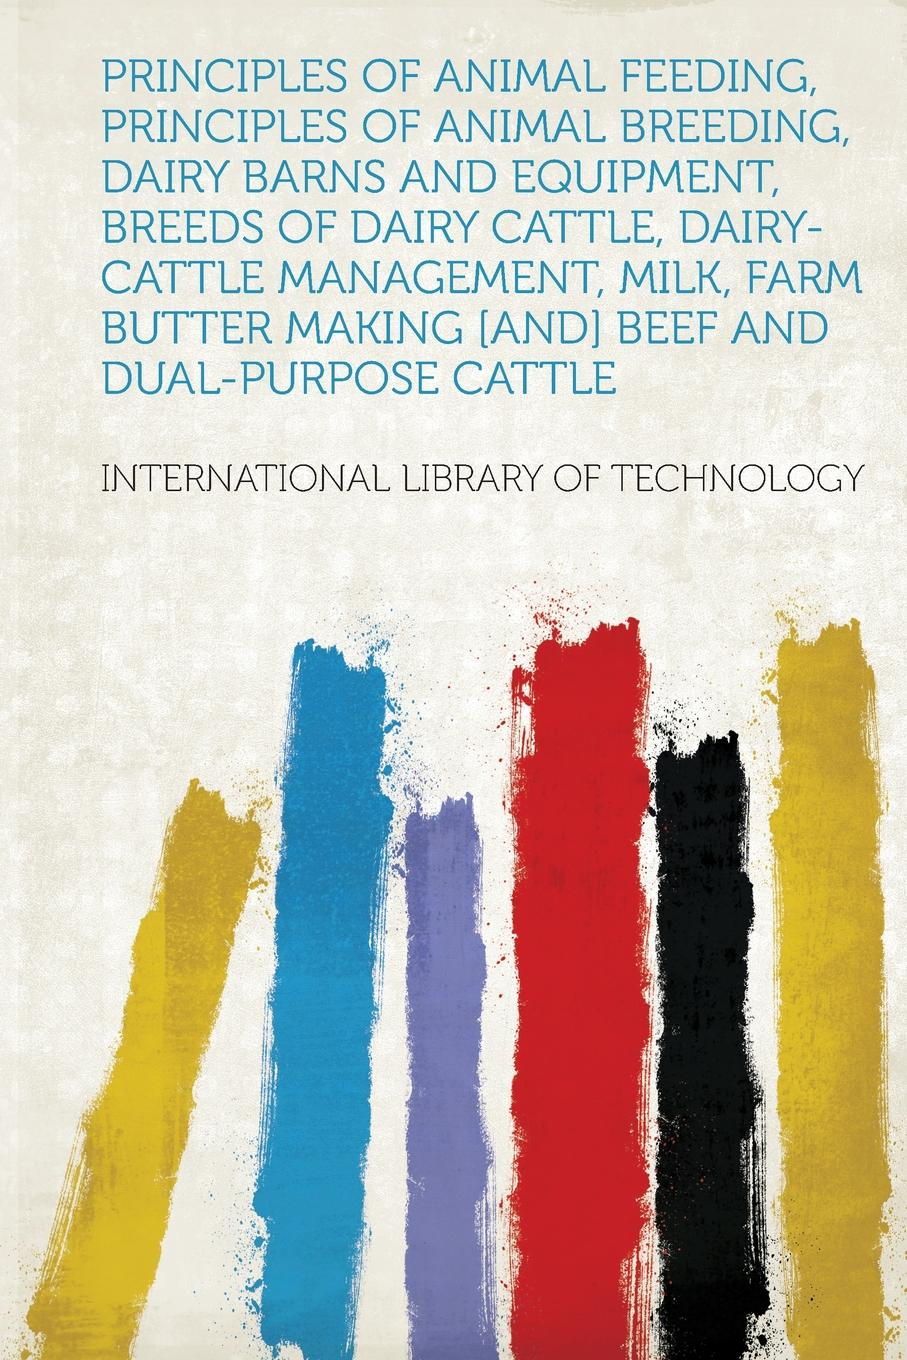 International library of technology Principles of Animal Feeding, Principles of Animal Breeding, Dairy Barns and Equipment, Breeds of Dairy Cattle, Dairy-Cattle Management, Milk, Farm Butter Making .And. Beef and Dual-Purpose Cattle scott royer raising beef cattle for dummies